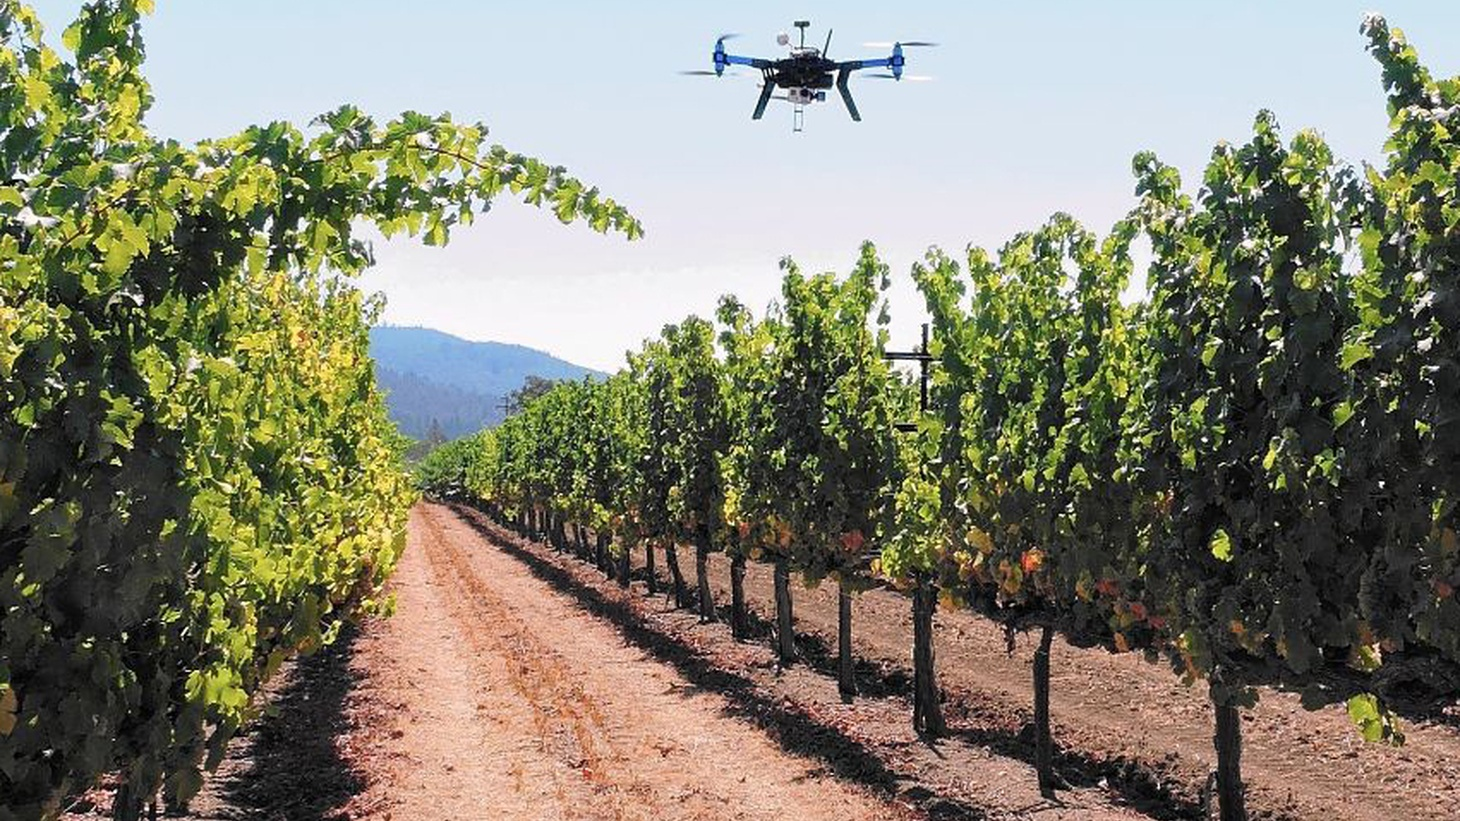 What are drones doing flying over vineyards, and why are they playing hawk noises?